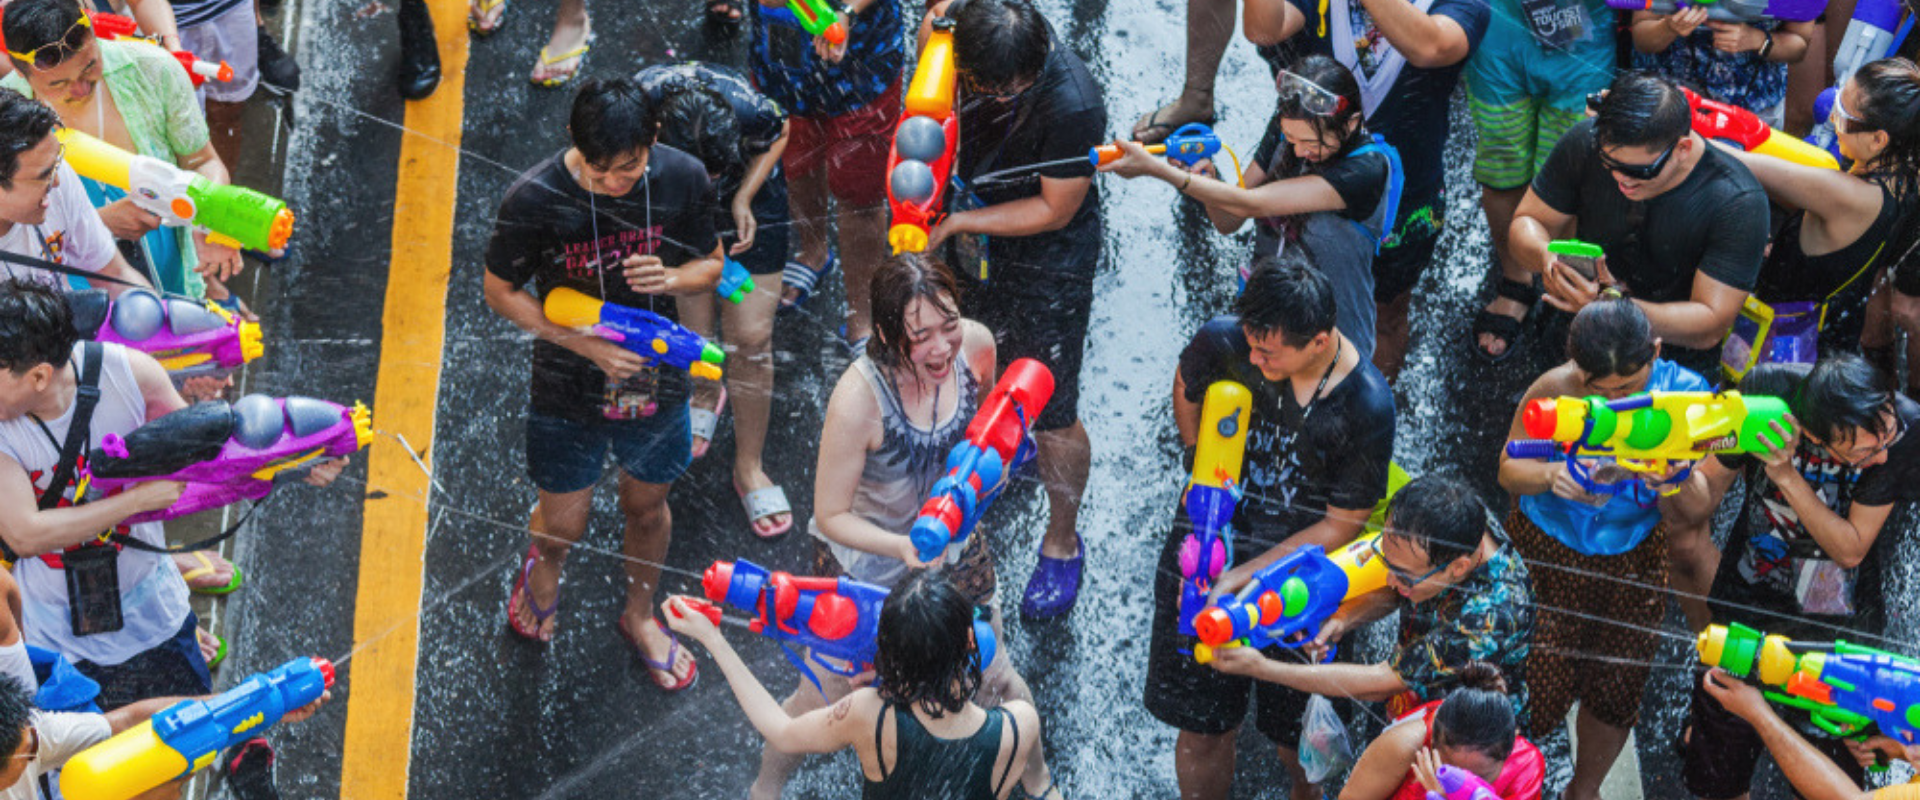 songkran health 2019-1